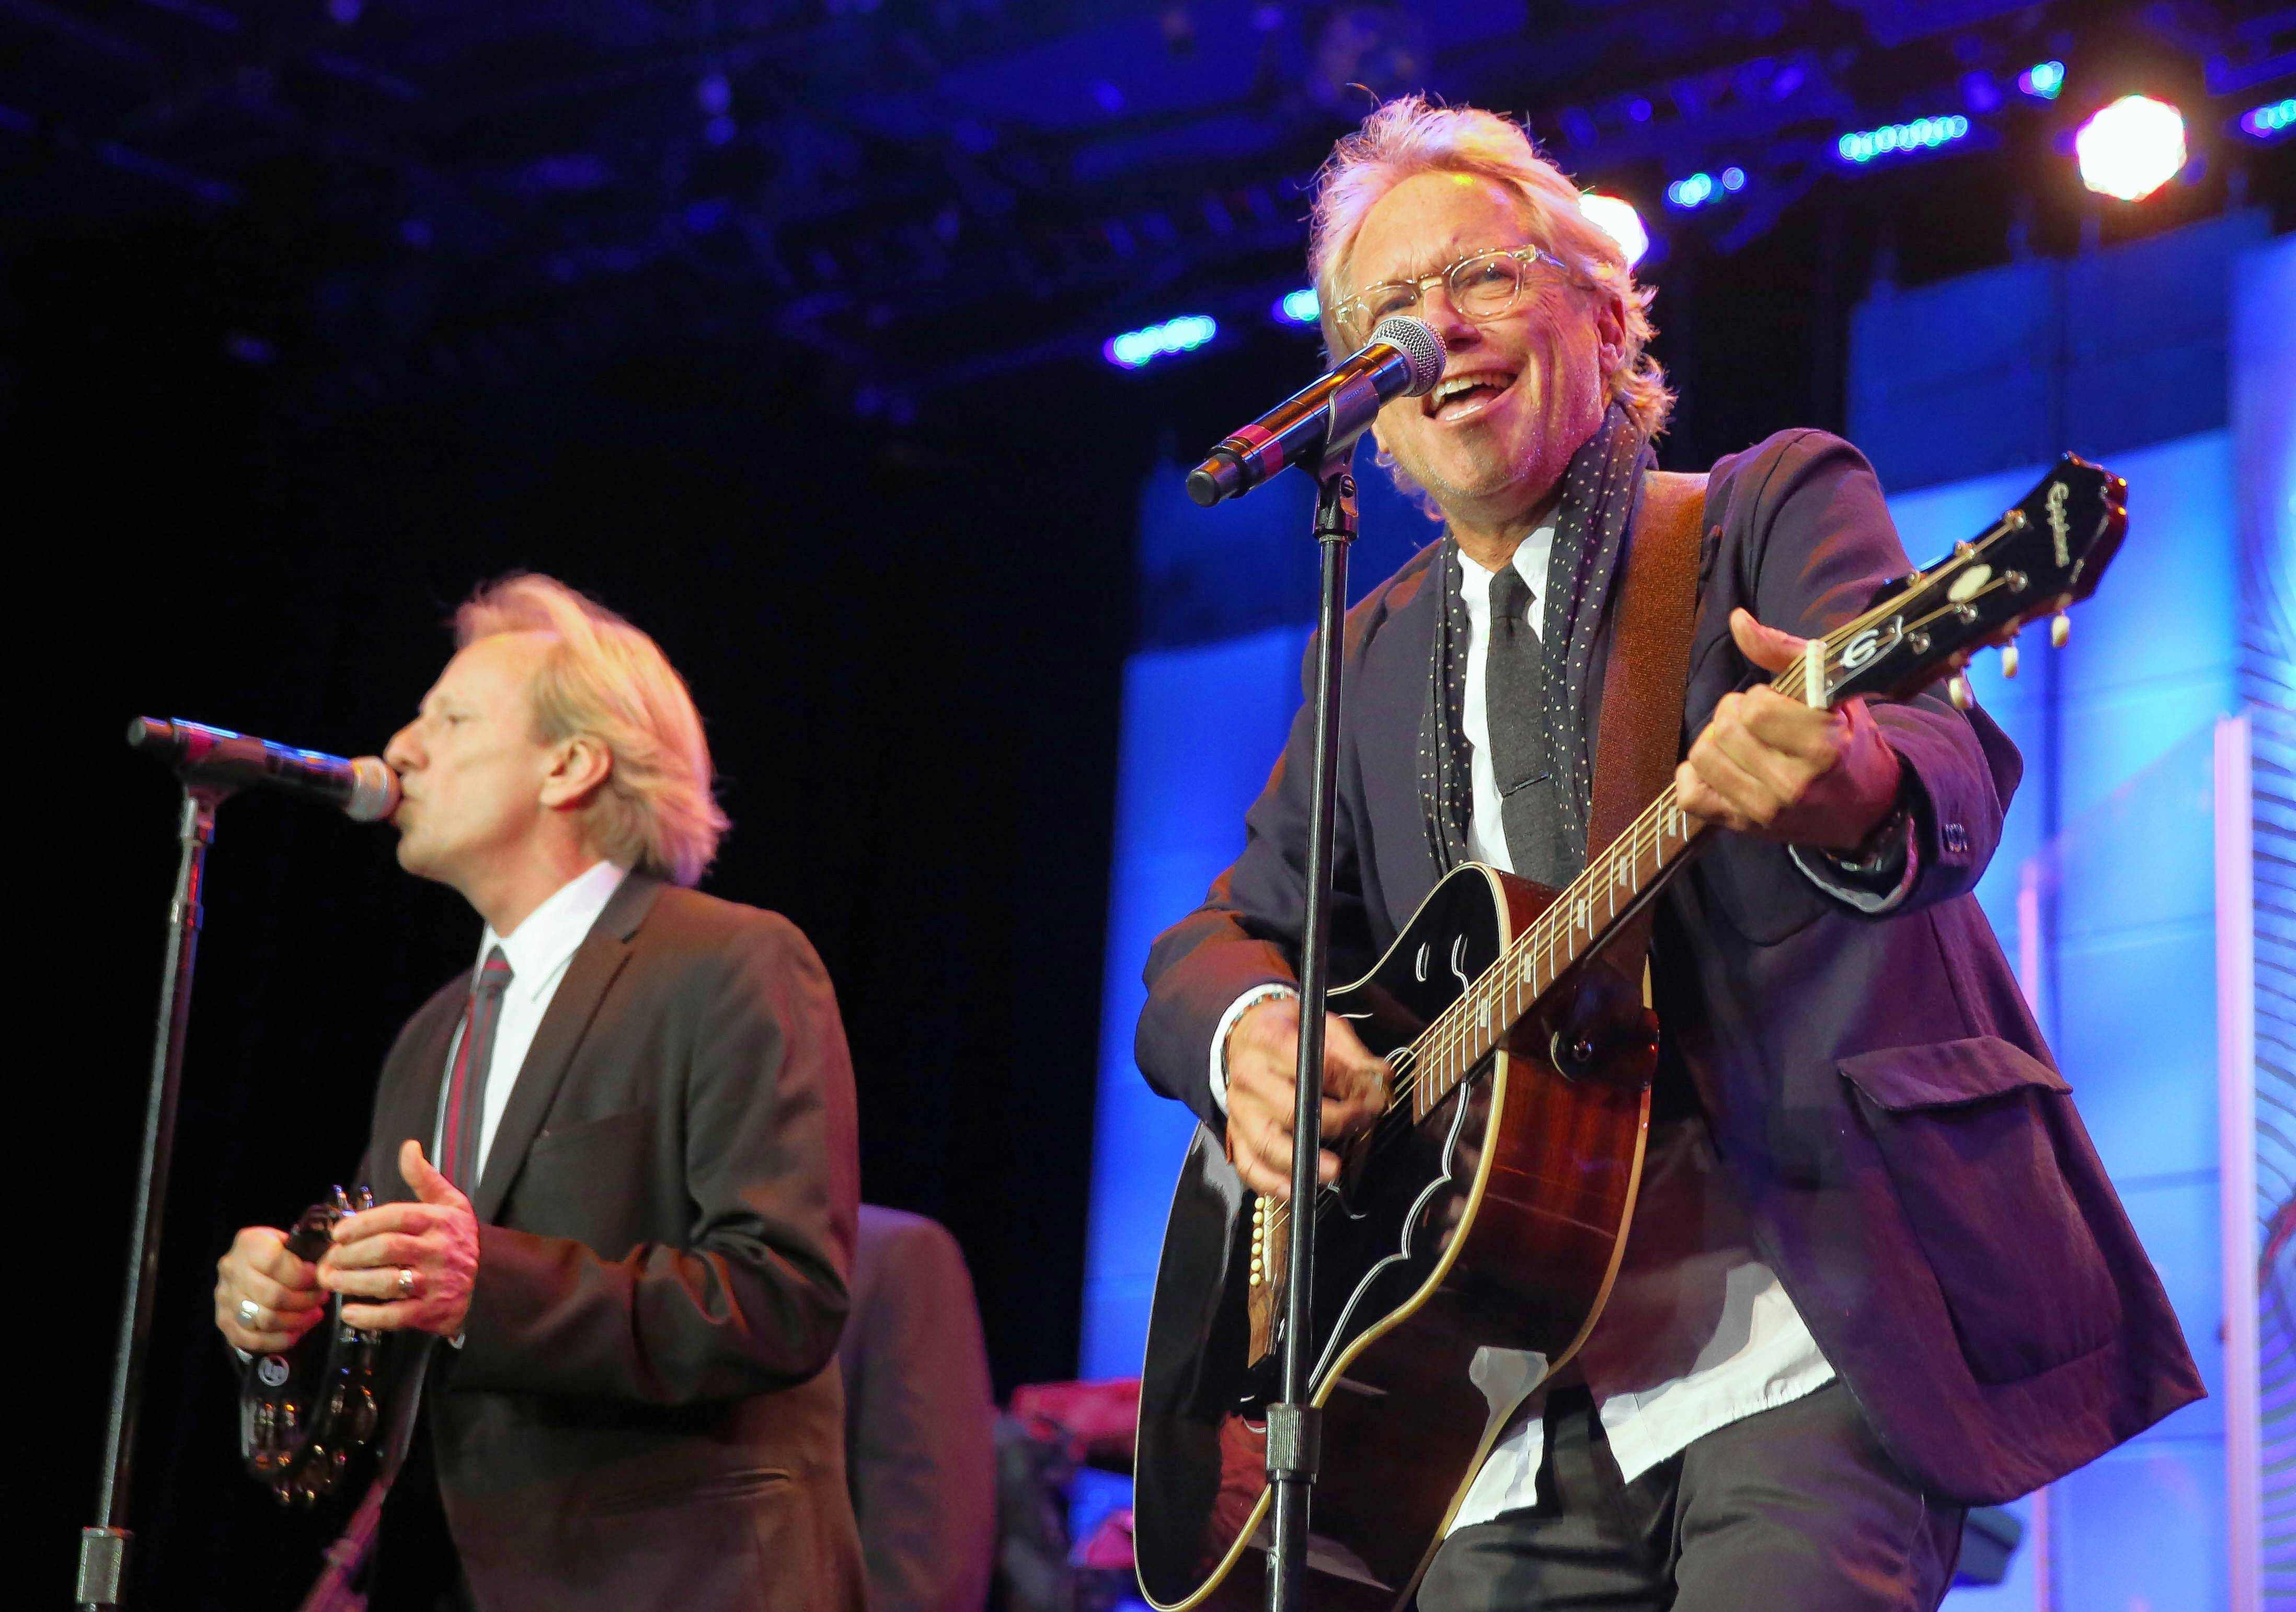 Dewey Bunnell, left, and Gerry Beckley will perform with America Saturday and Sunday, Nov. 18 and 19, at the Arcada Theatre in St. Charles.